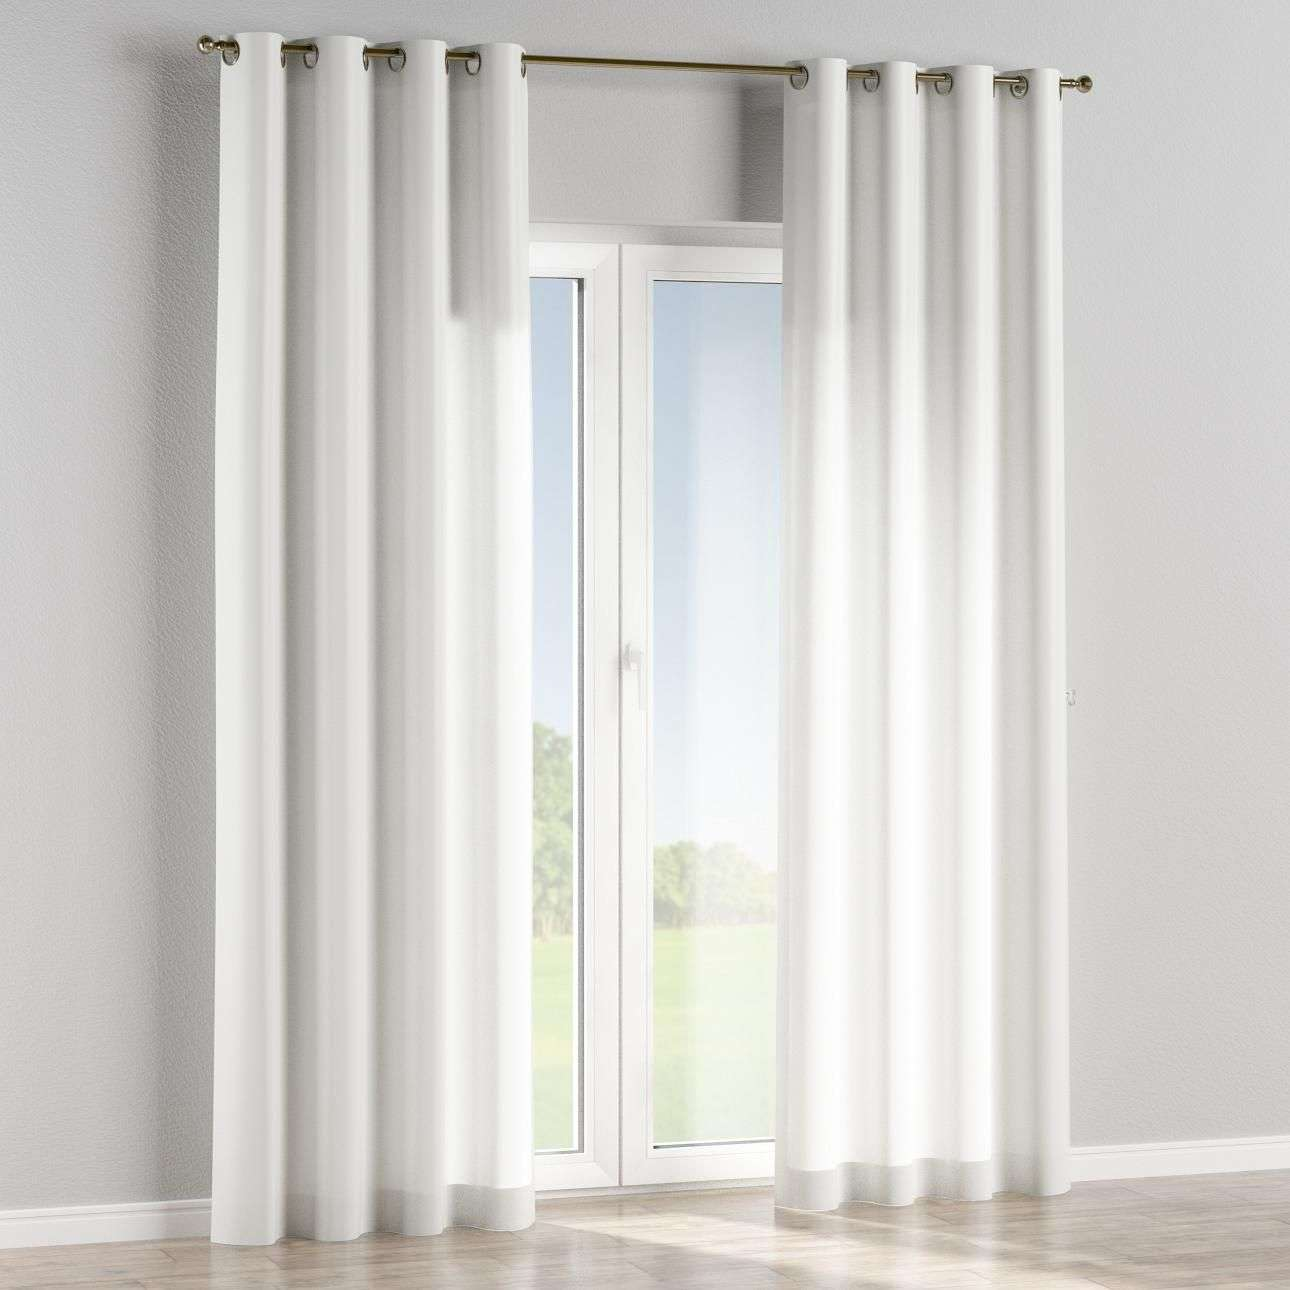 Eyelet curtains in collection Marina, fabric: 140-12